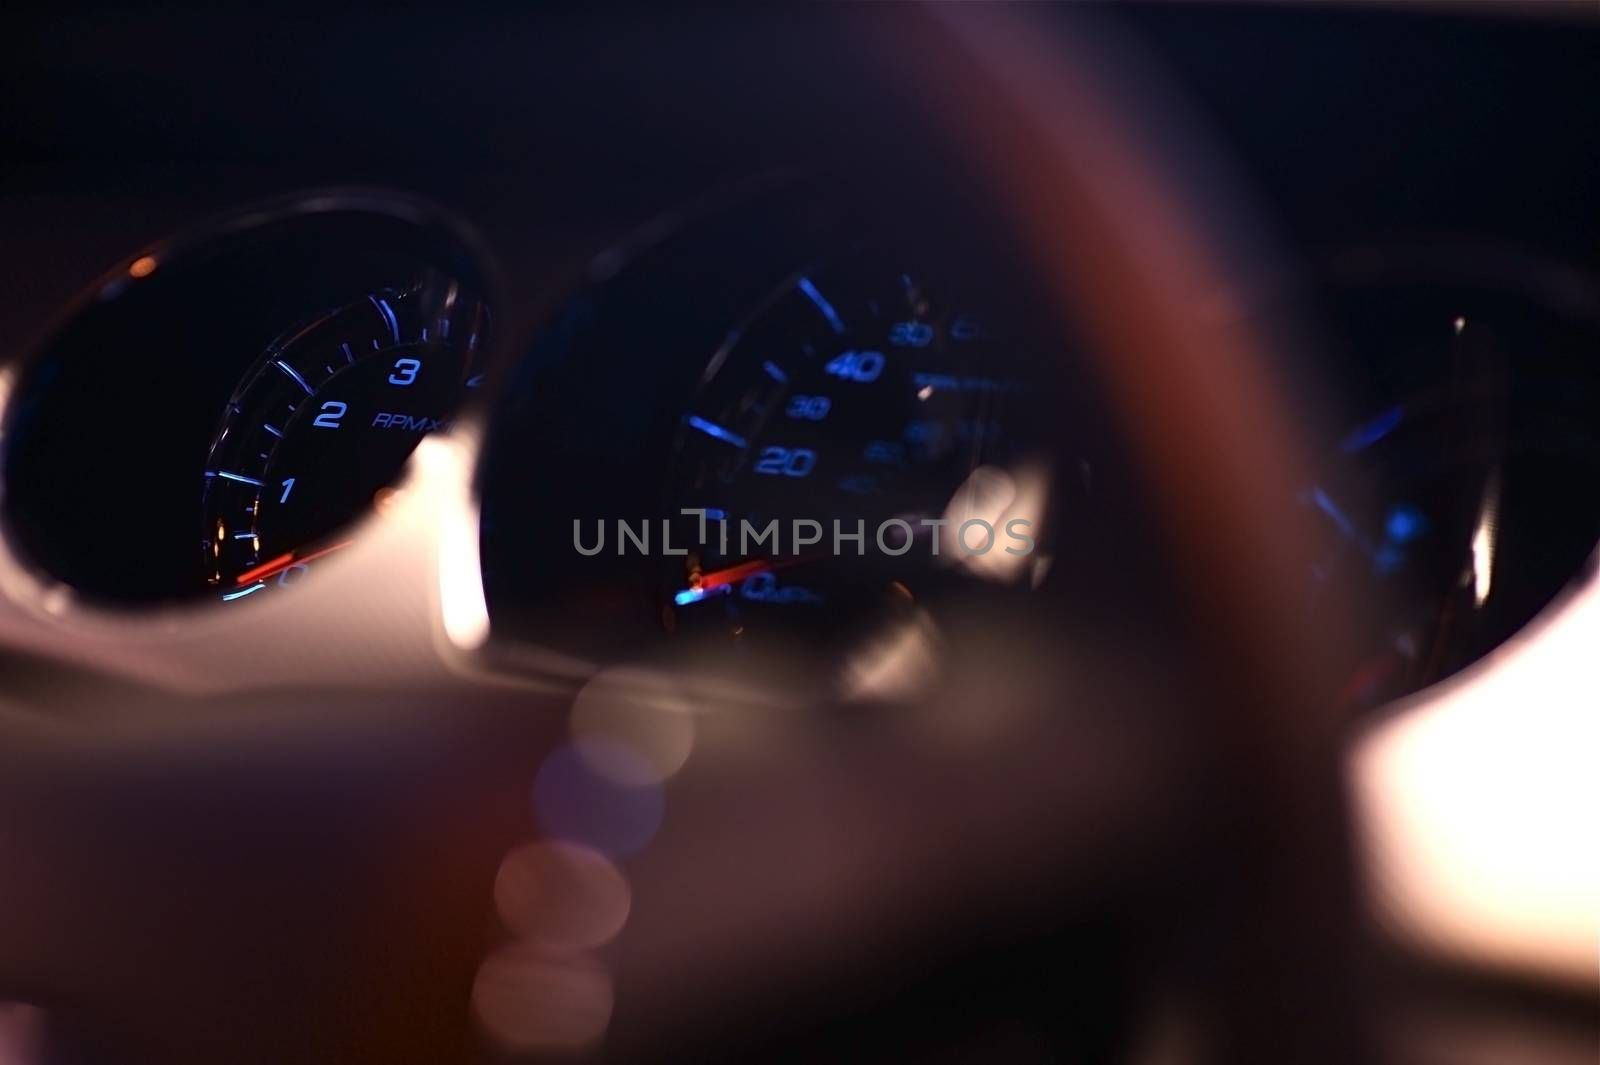 Modern Car Dash and Steering Wheel Closeup. Transportation Photo Collection